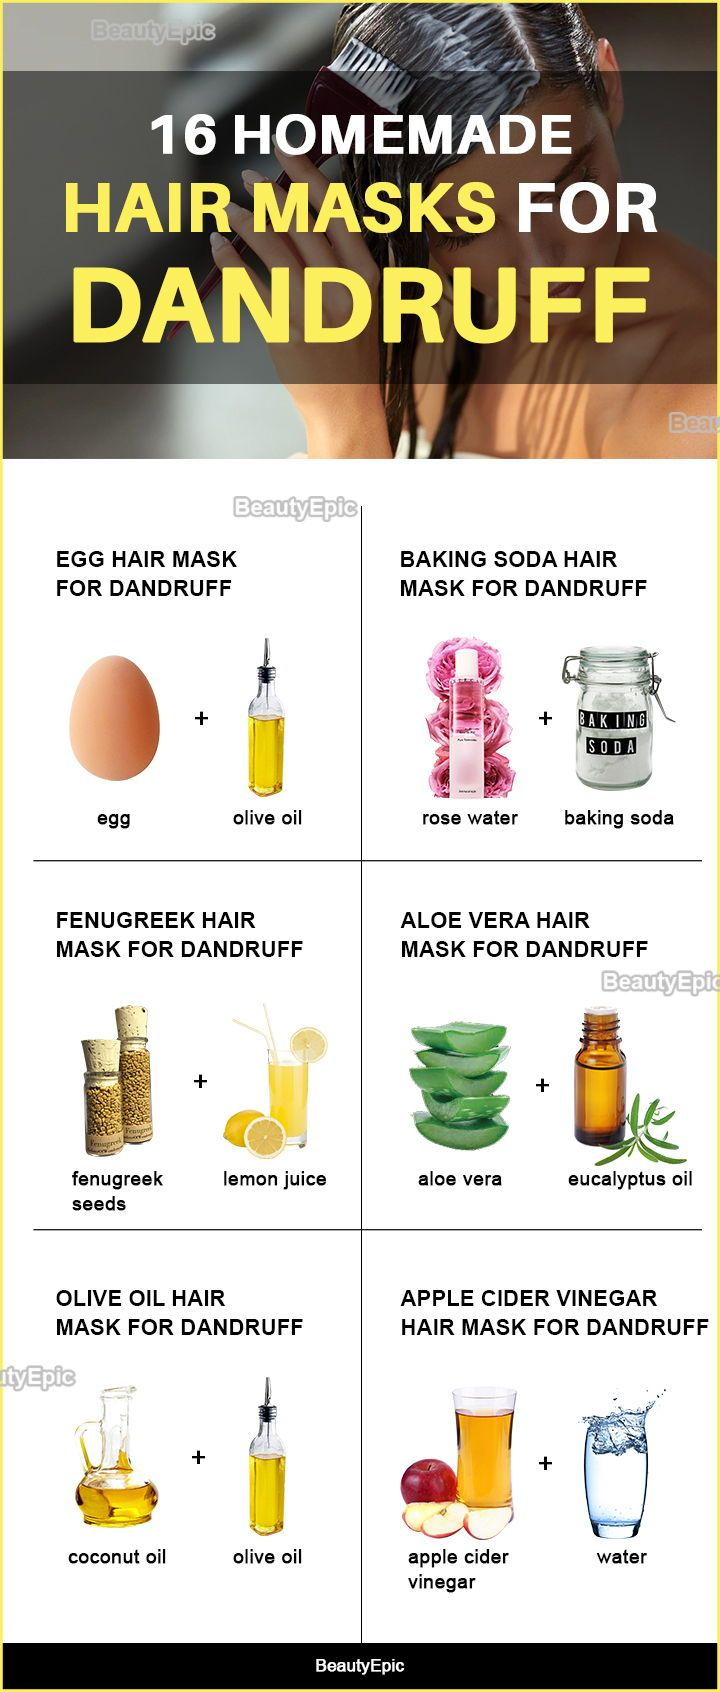 Homemade Hair Masks For Dandruff Recipes And How To Apply Homemade Hair Mask Hair Mask For Dandruff Homemade Hair Products